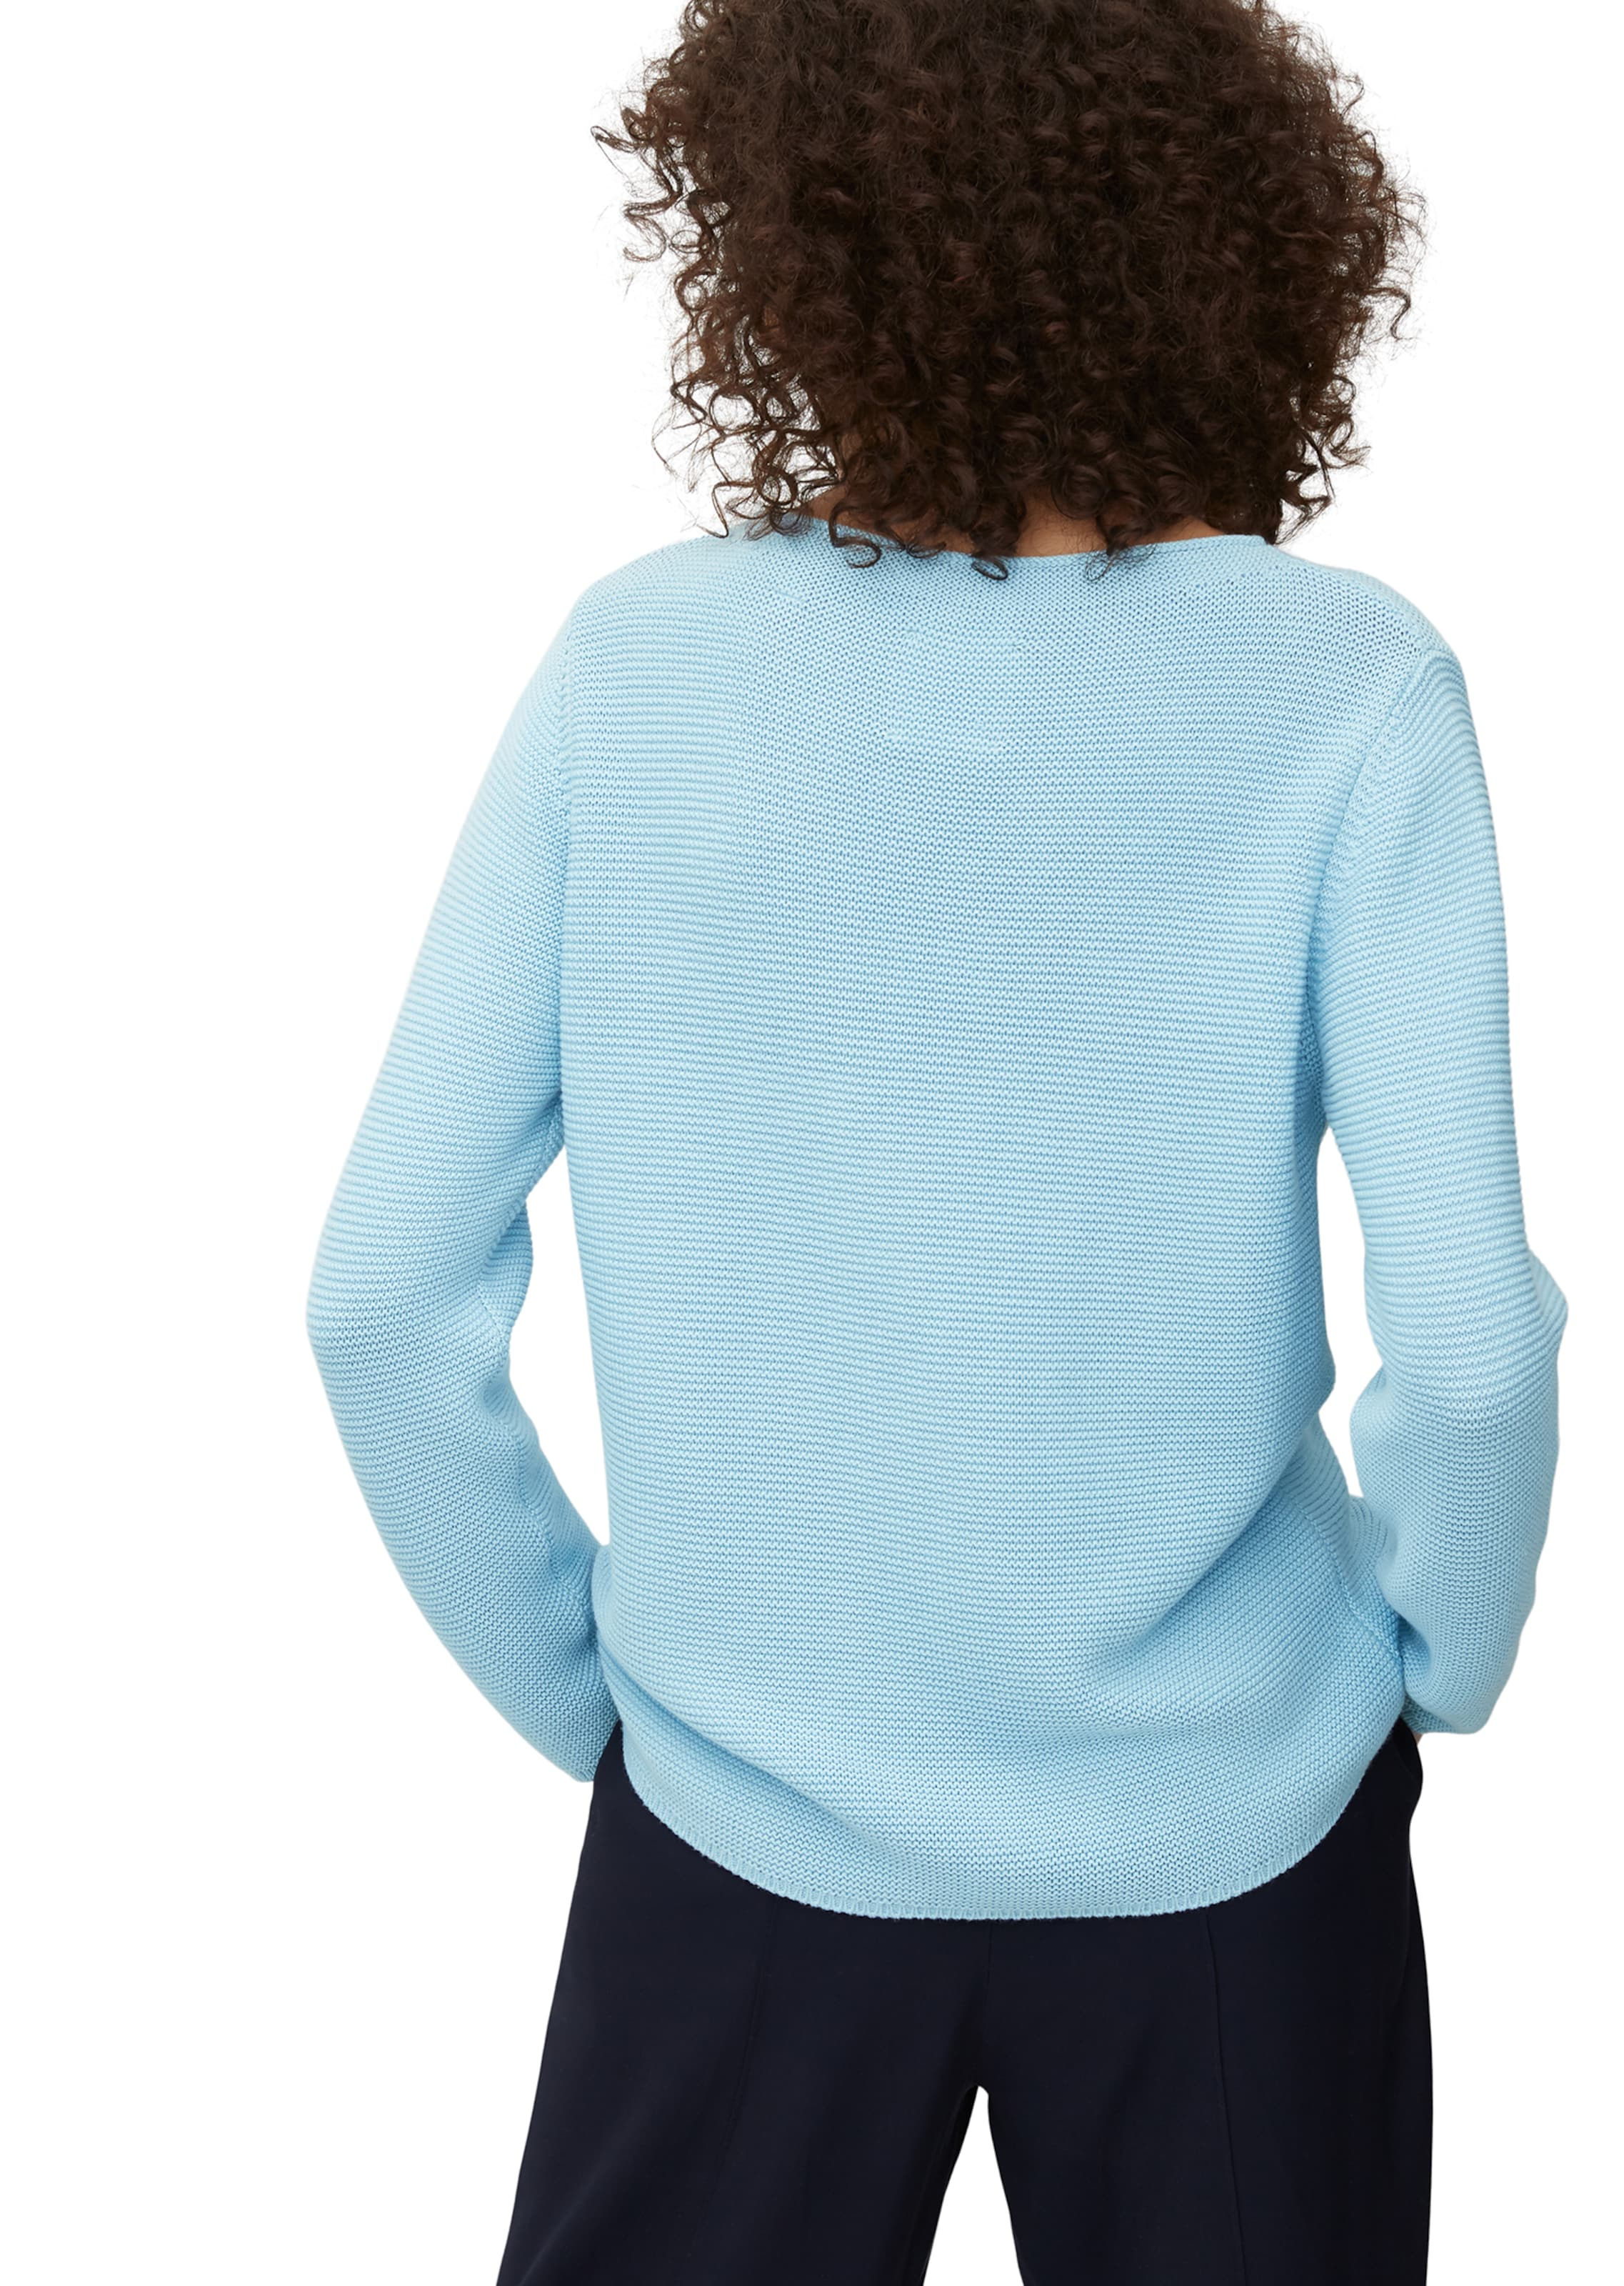 O'polo Pullover In Marc Pullover Hellblau Pullover Marc Hellblau In Marc O'polo O'polo m80NnyvOPw